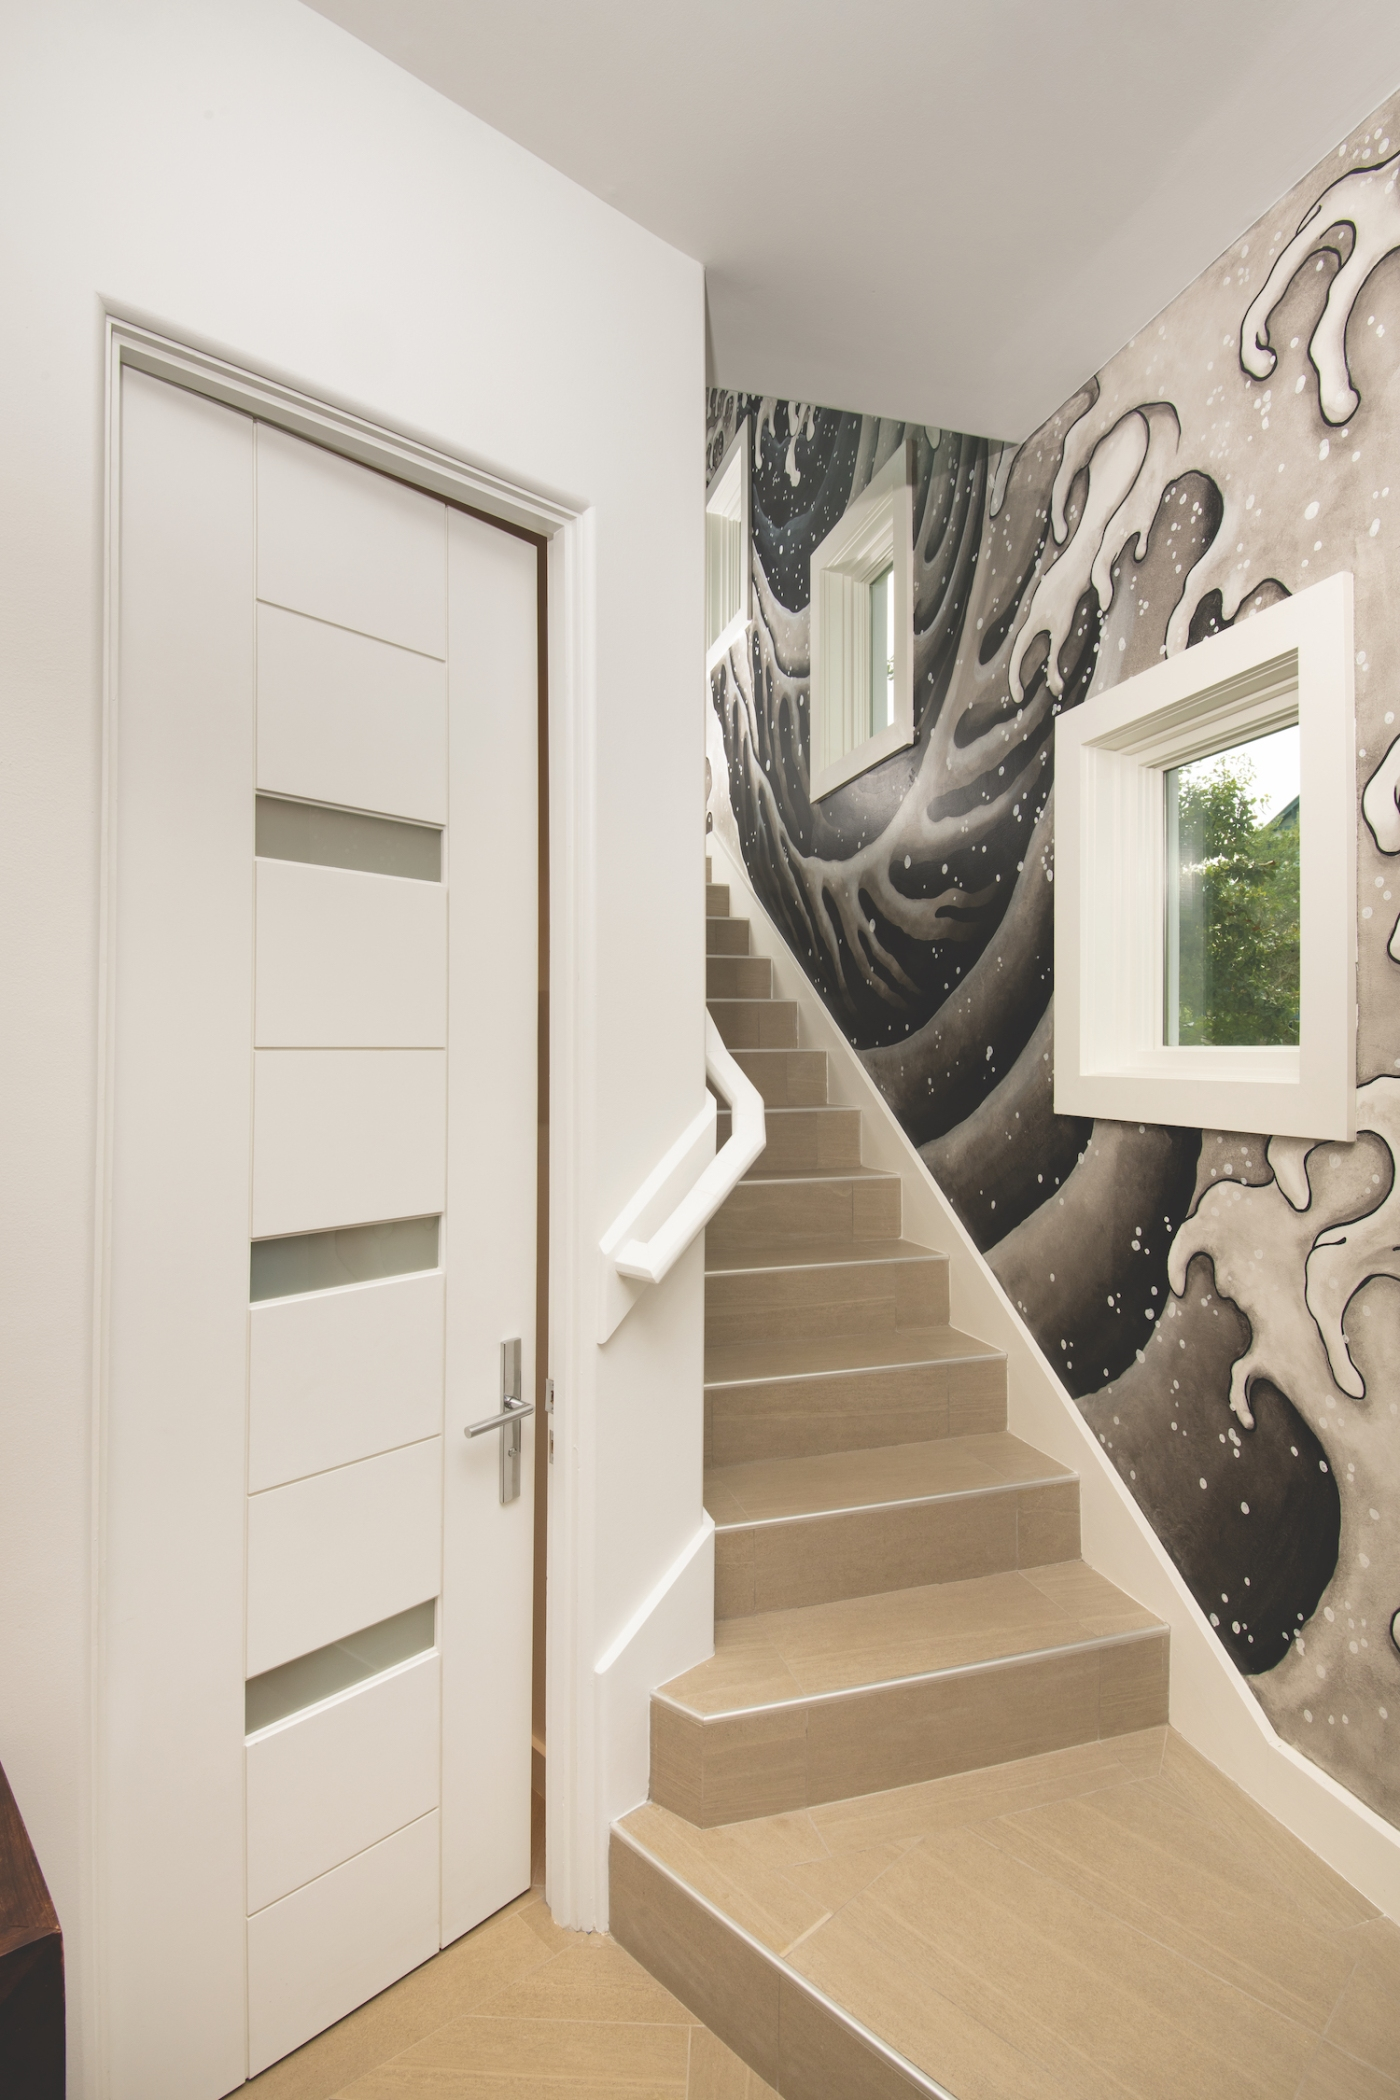 Vern Yip Rosemary Beach Stair Mural.jpg